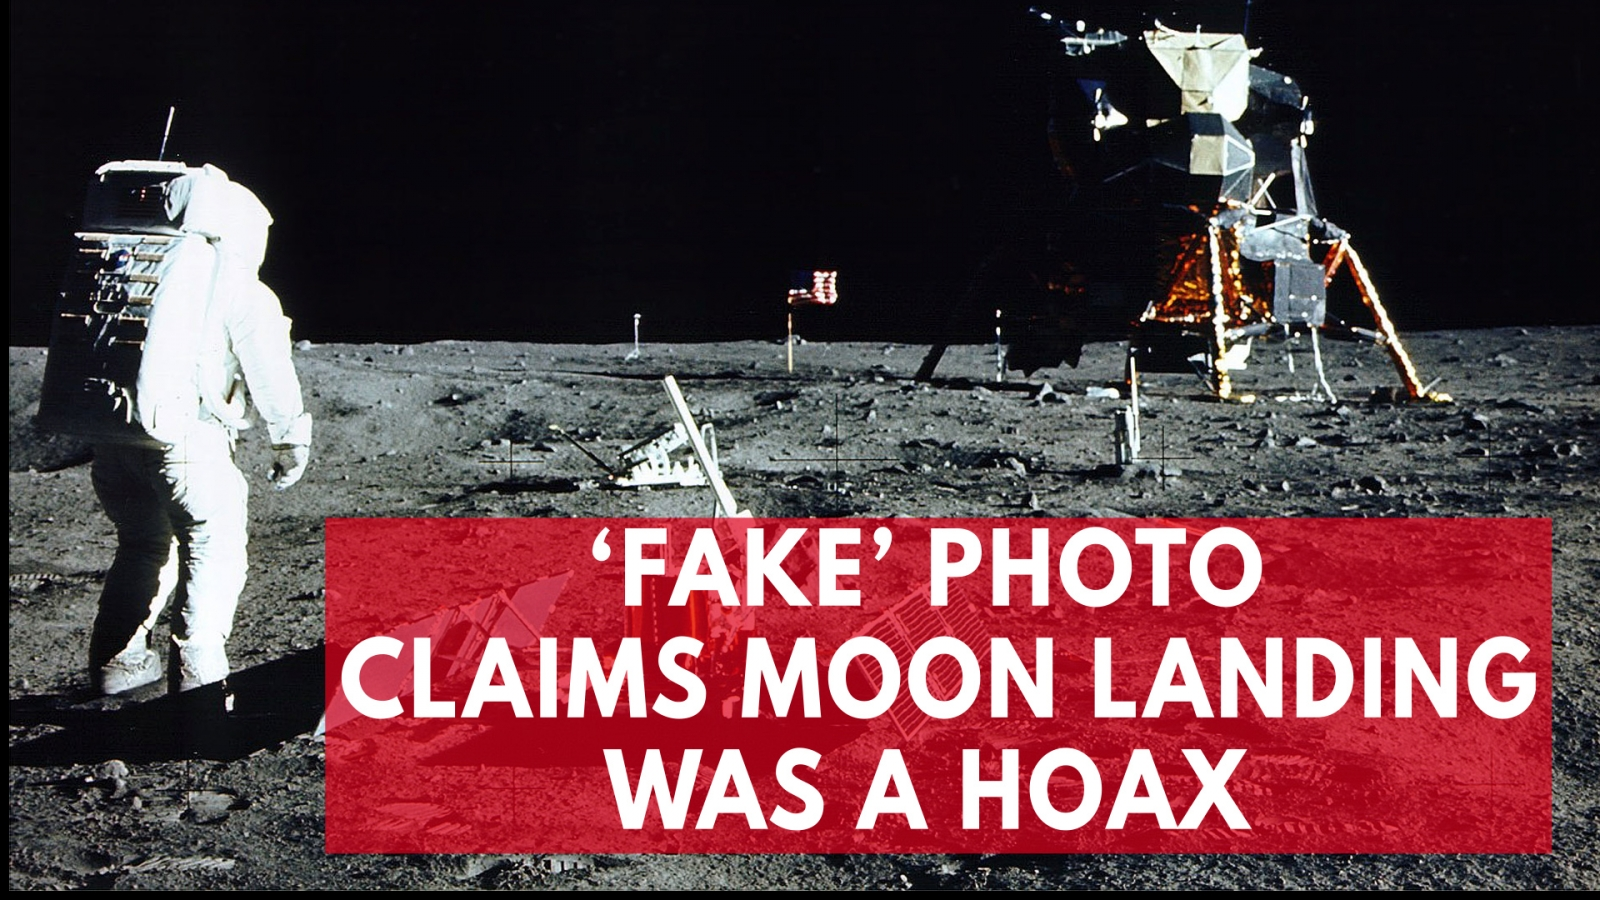 fake-photo-continues-conspiracy-that-the-moon-landing-was-a-hoax